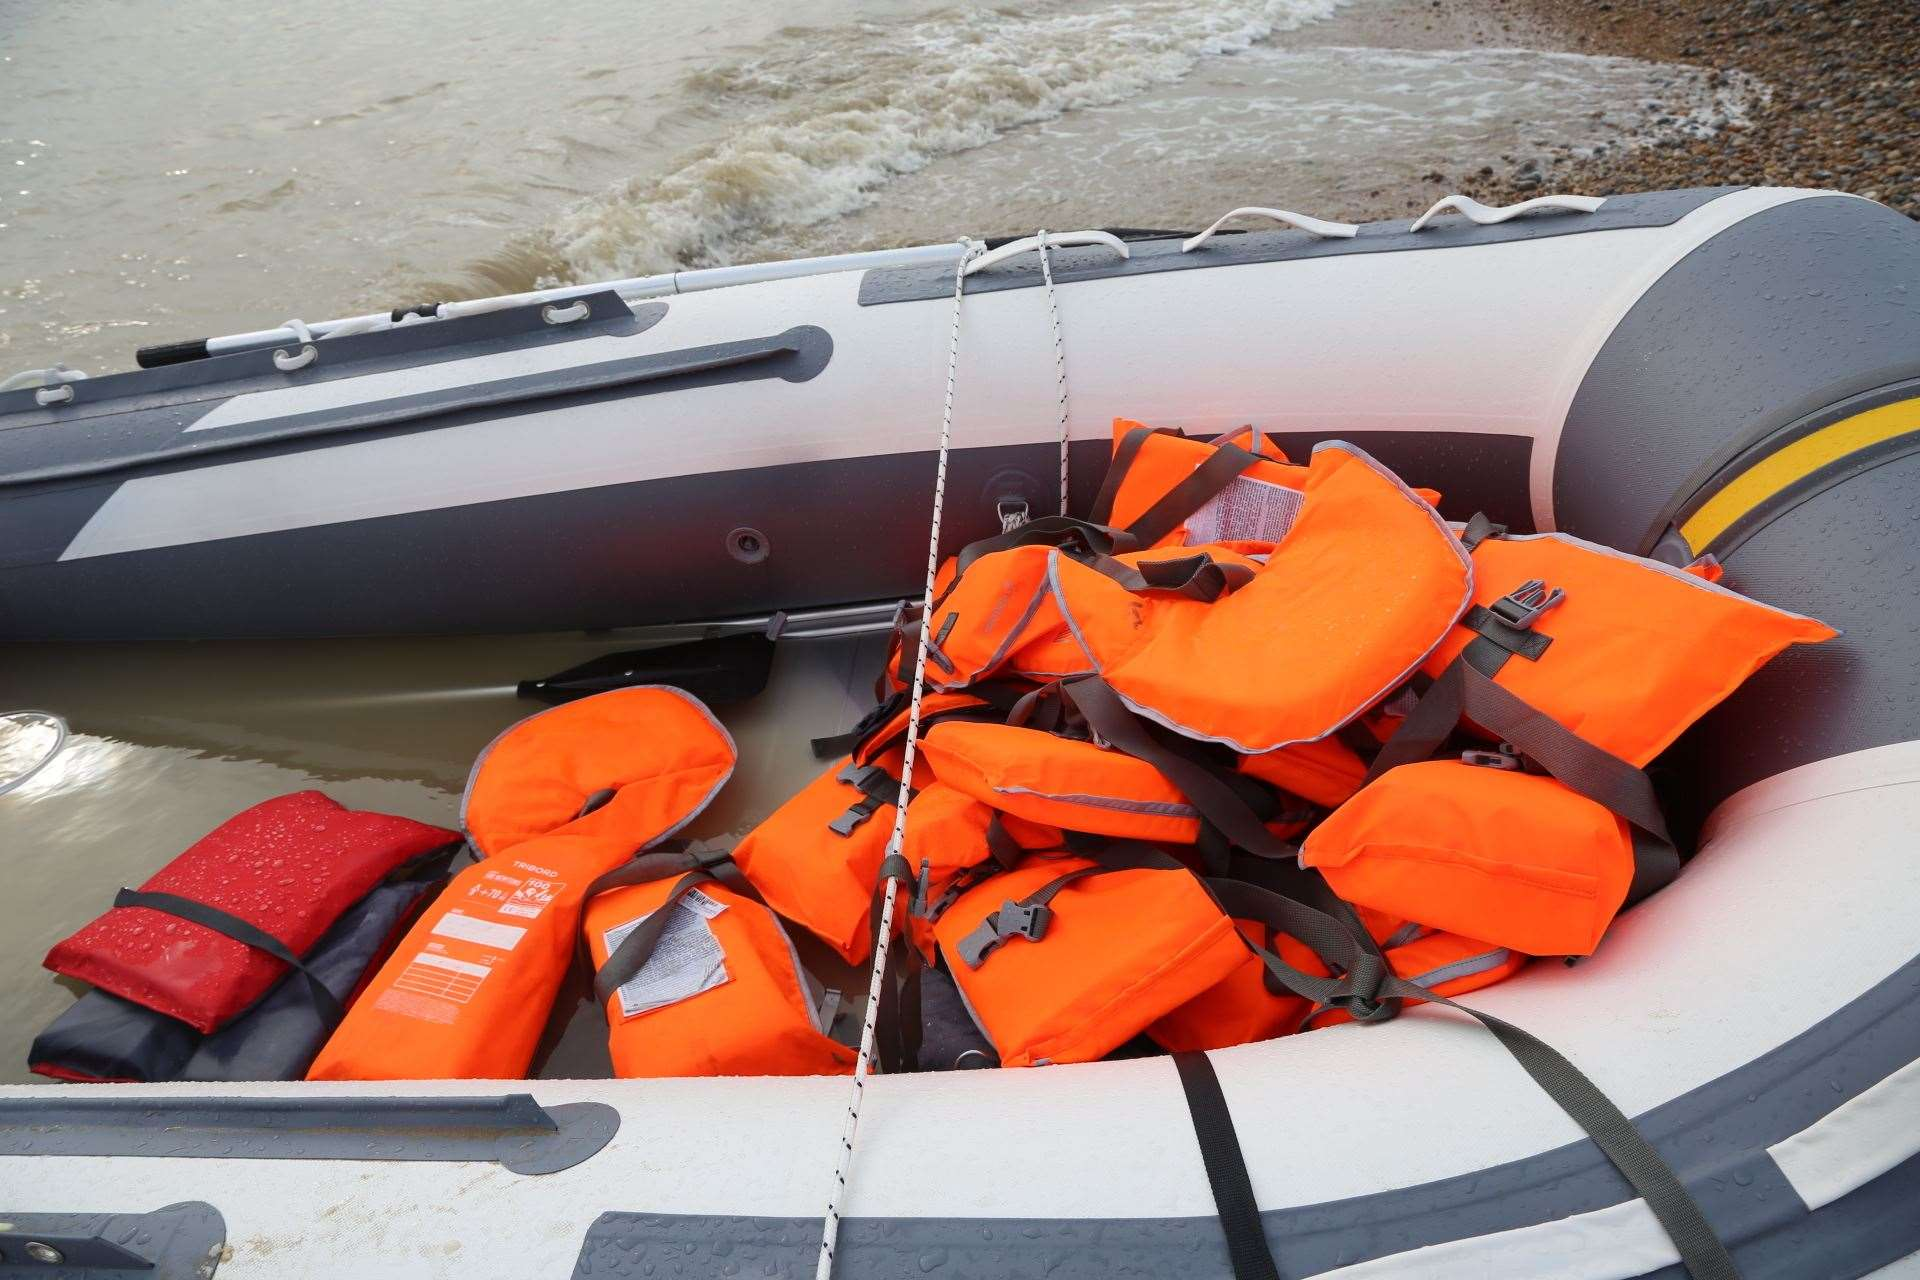 A dinghy recovered on the Marsh coast today. Picture: Susan Pilcher